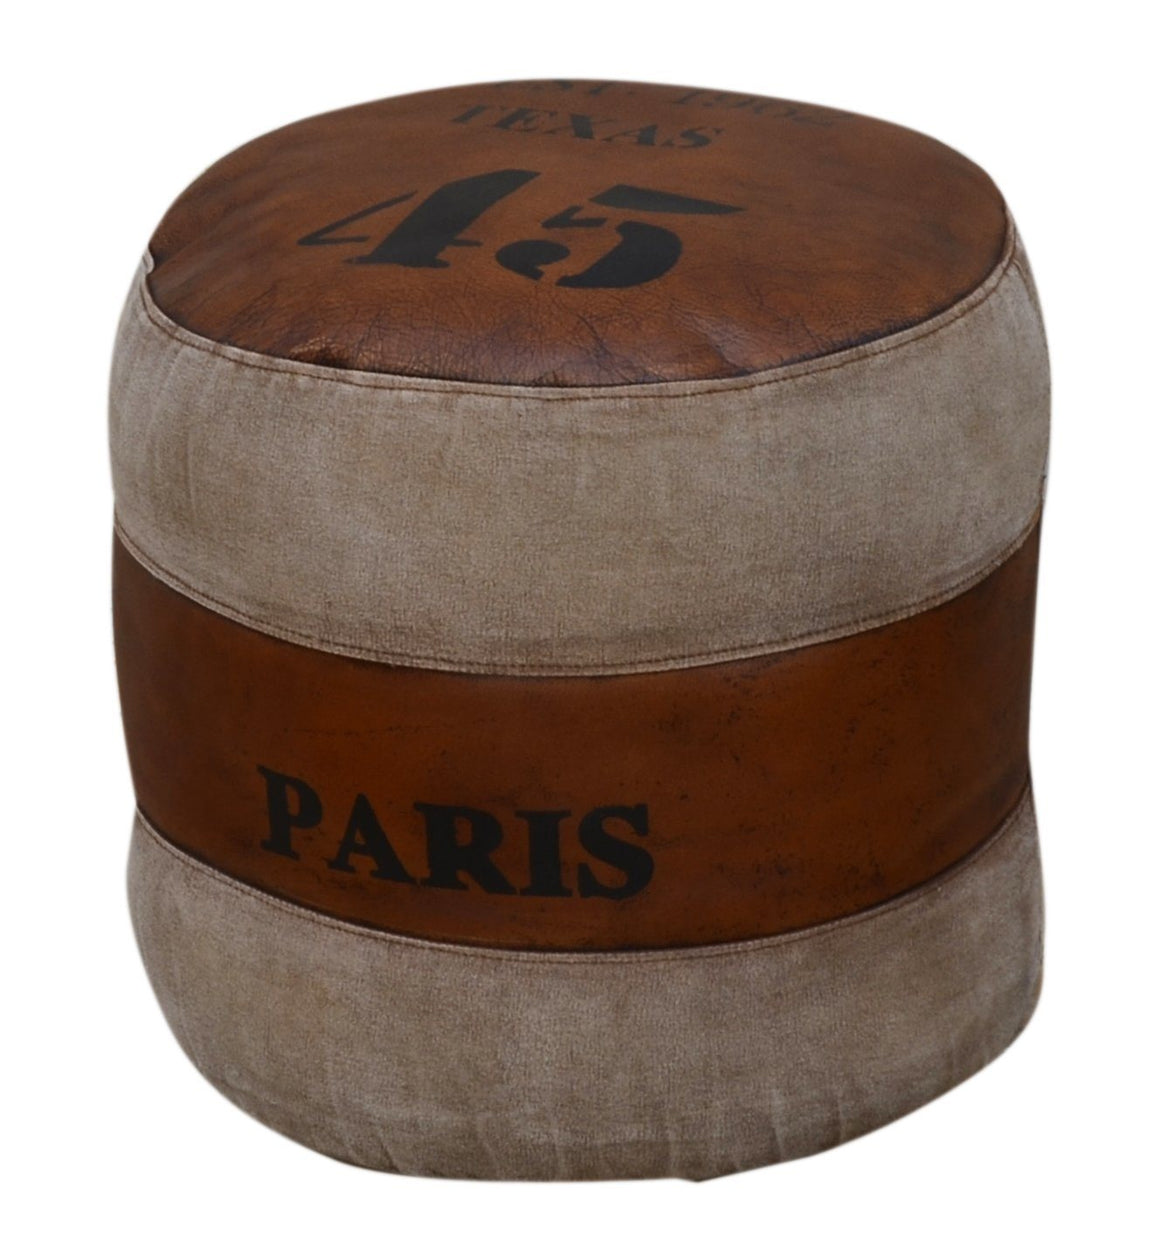 TEXAS PARIS 45 ROUND OTTOMAN Philbee Interiors